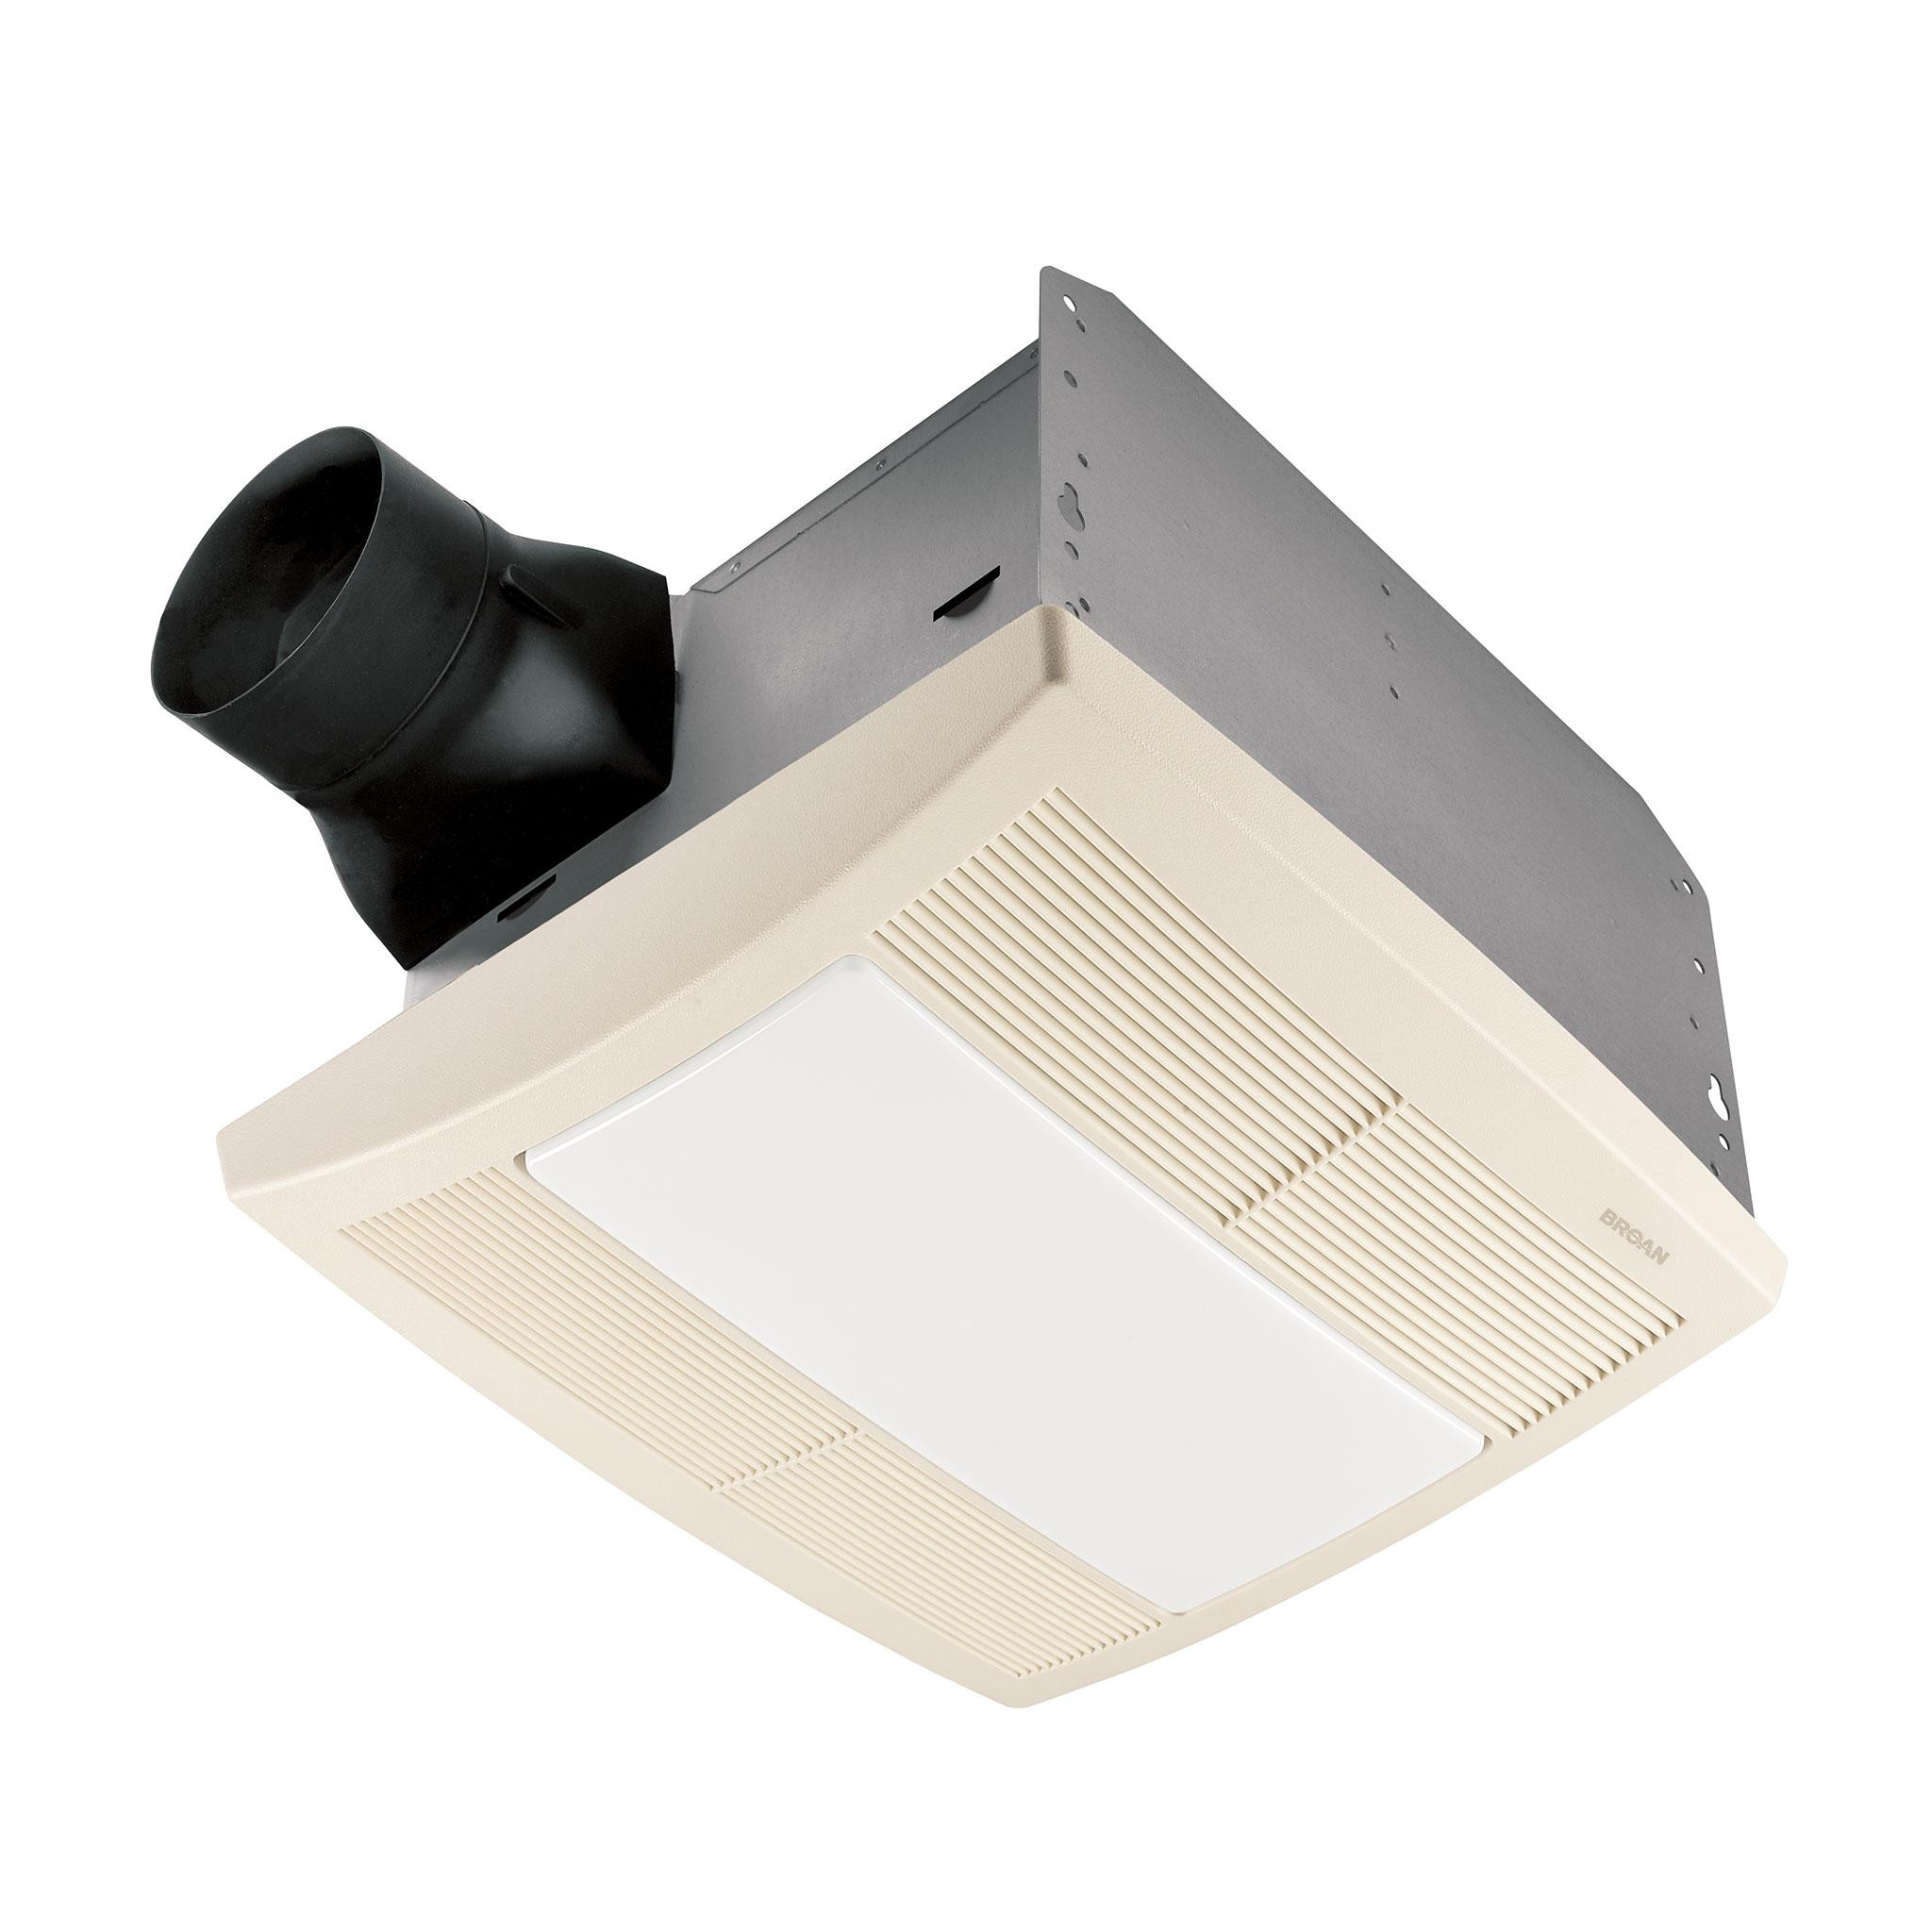 Best ideas about Bathroom Vent Fan With Light . Save or Pin Broan QTR080L Ventilation Fan and Light Bathroom Fans Now.